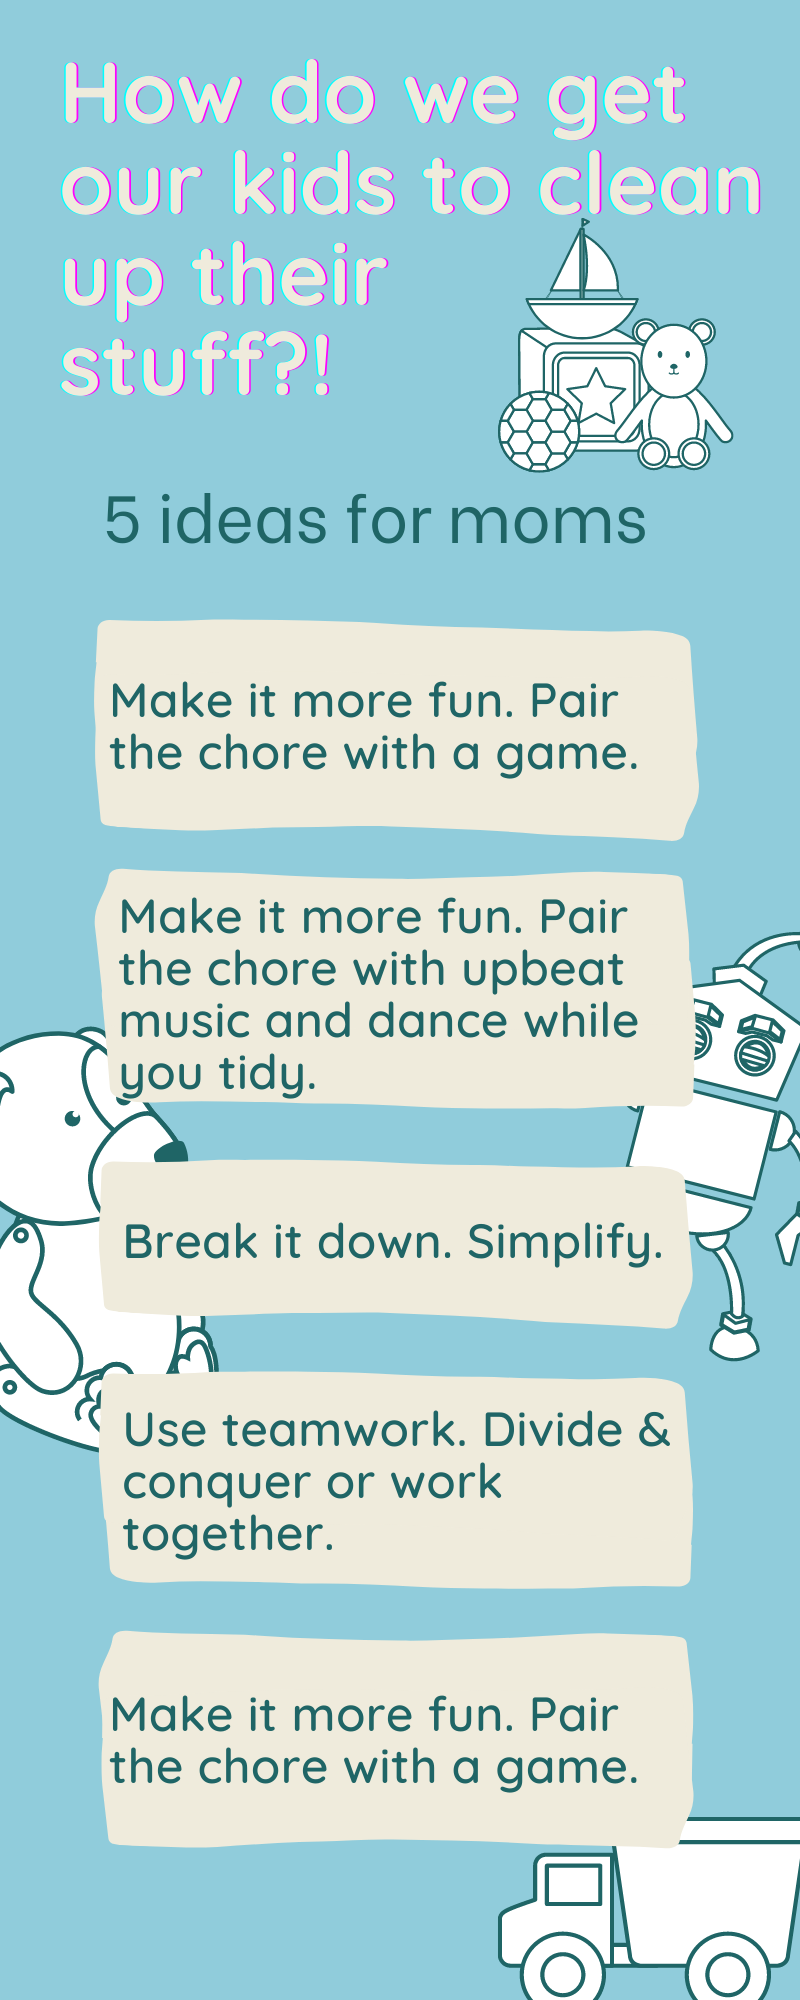 Infographic of tips for moms to help kids do chores